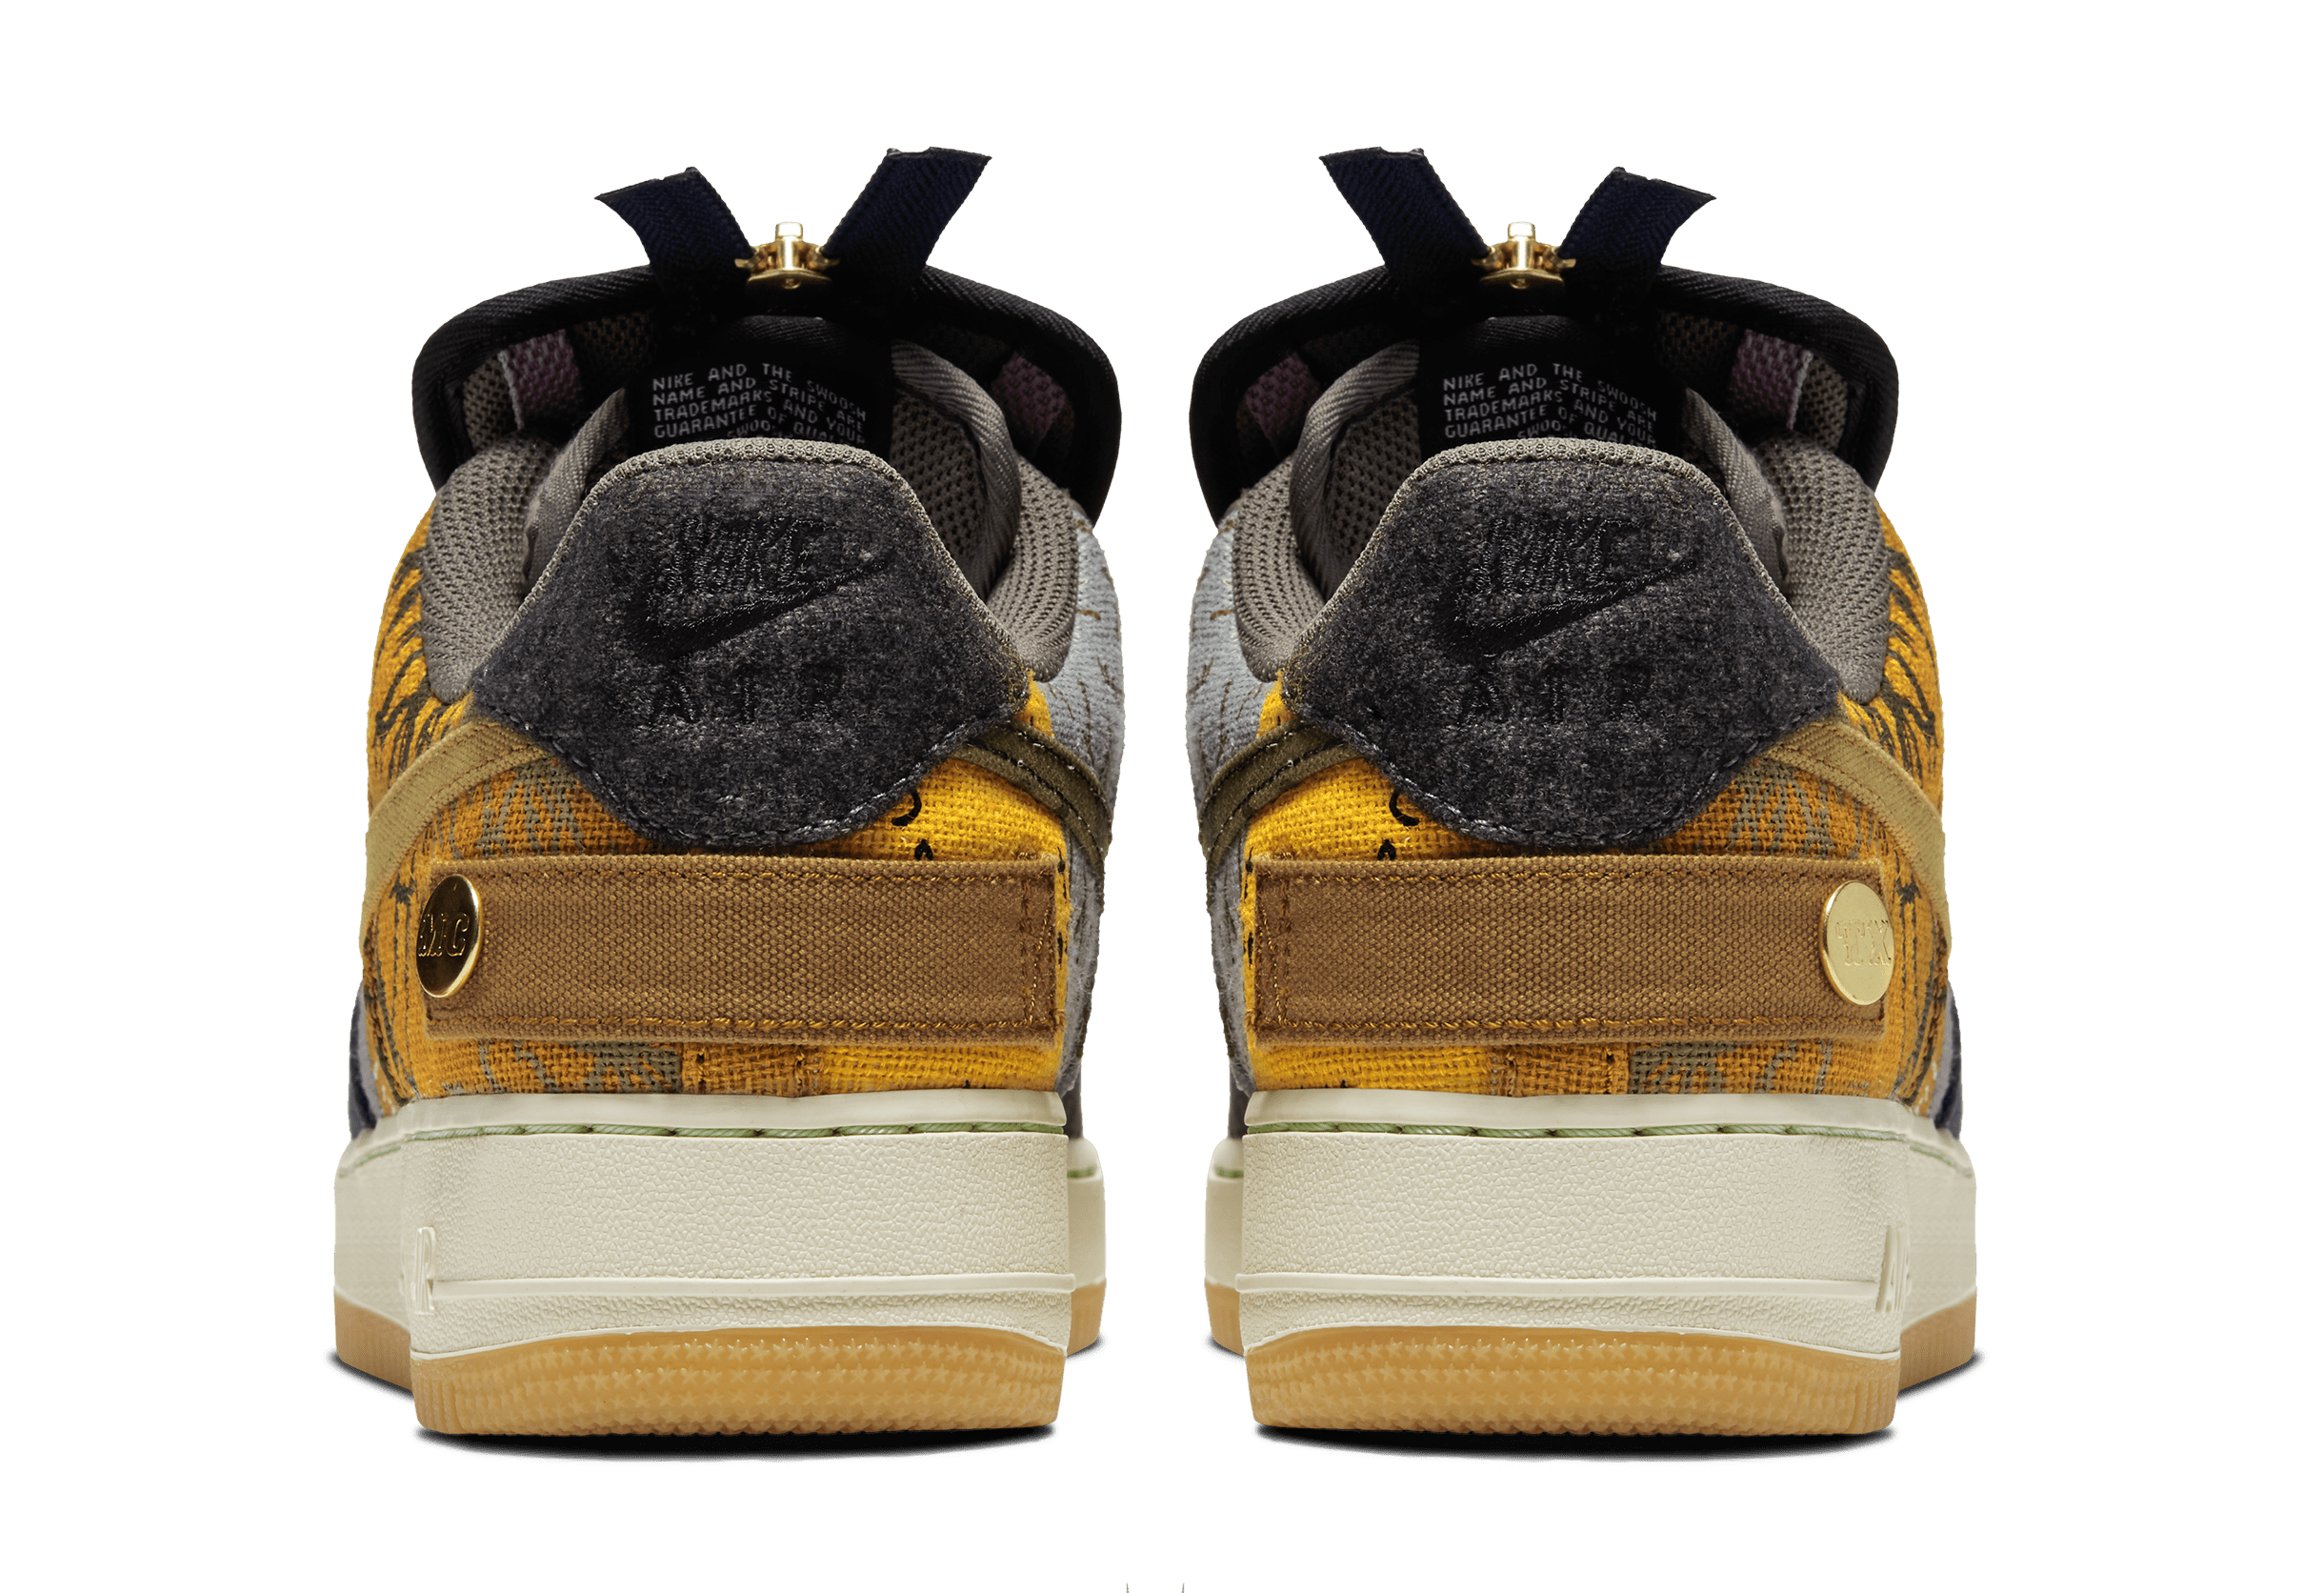 travis-scott-nike-air-force-1-low-cn2405-900-heel